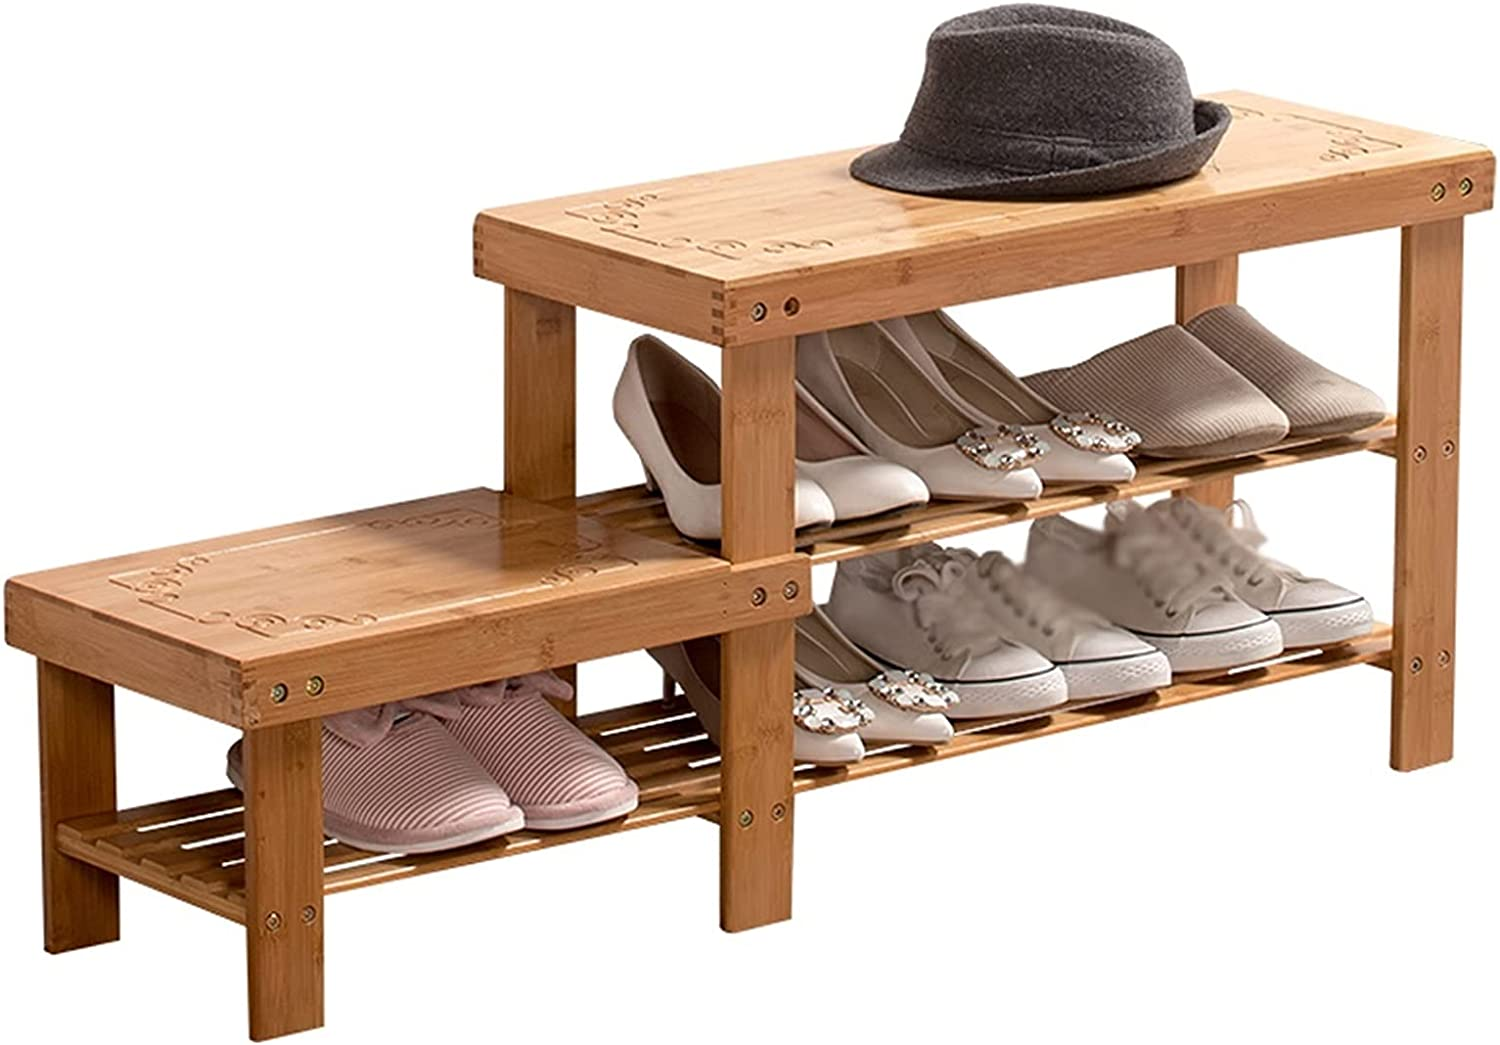 Shoe New arrival Shelves Rack 3-Layer Bedroom Shelf Bamboo SEAL limited product Living